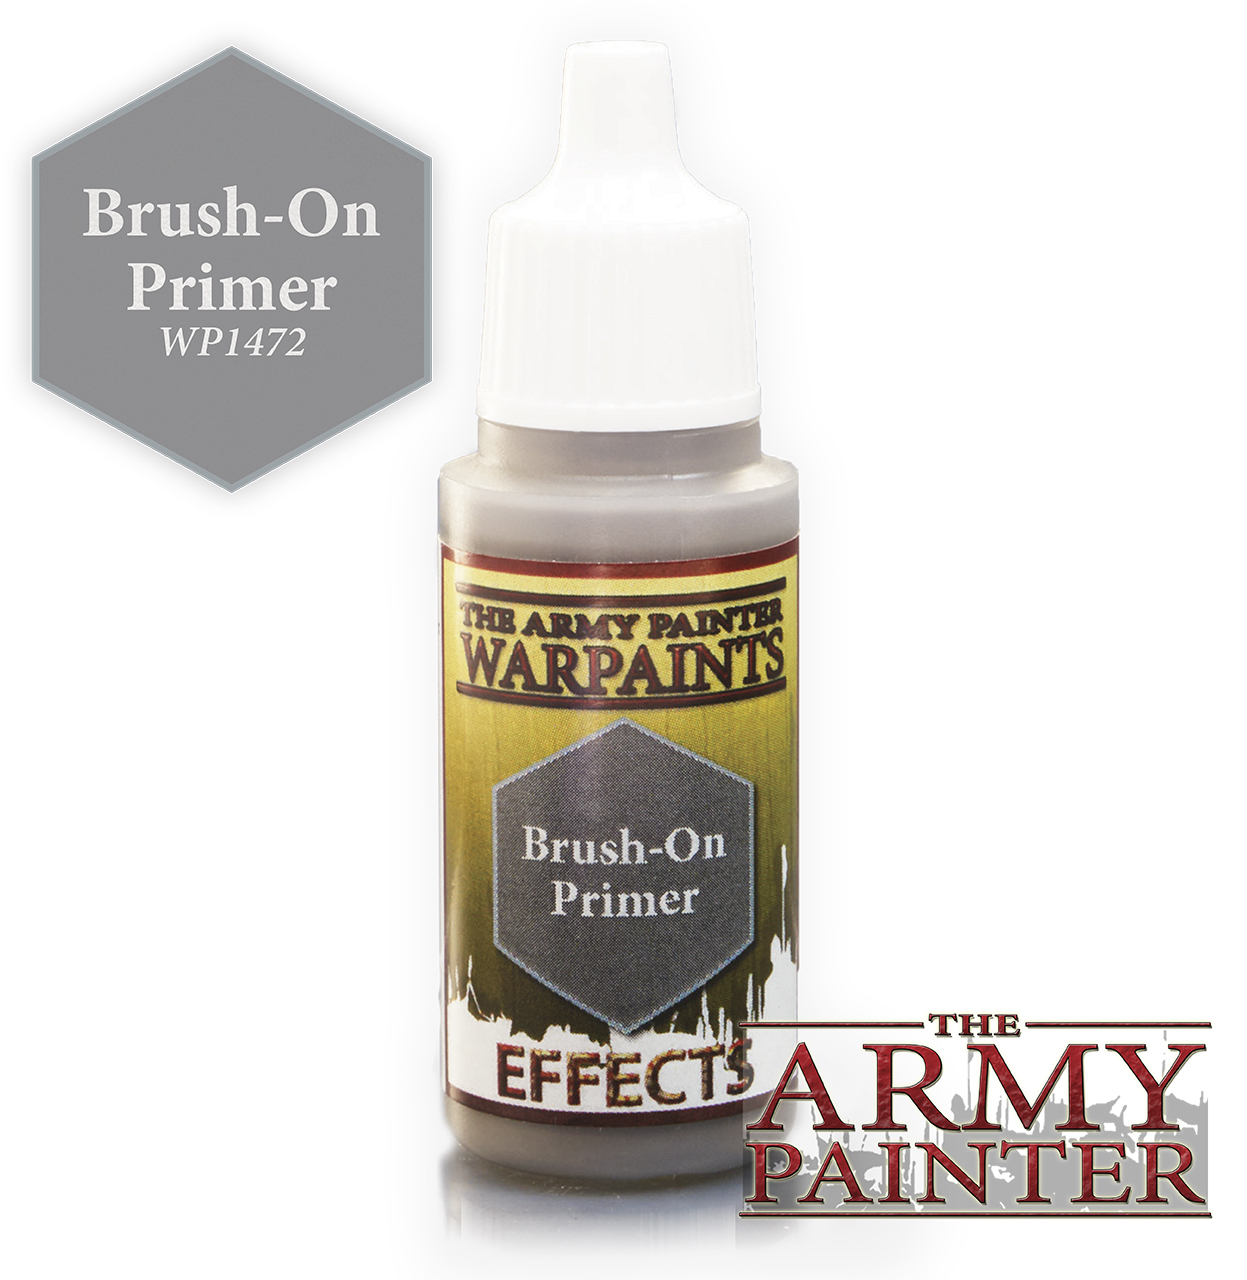 Brush-on Primer Warpaint image